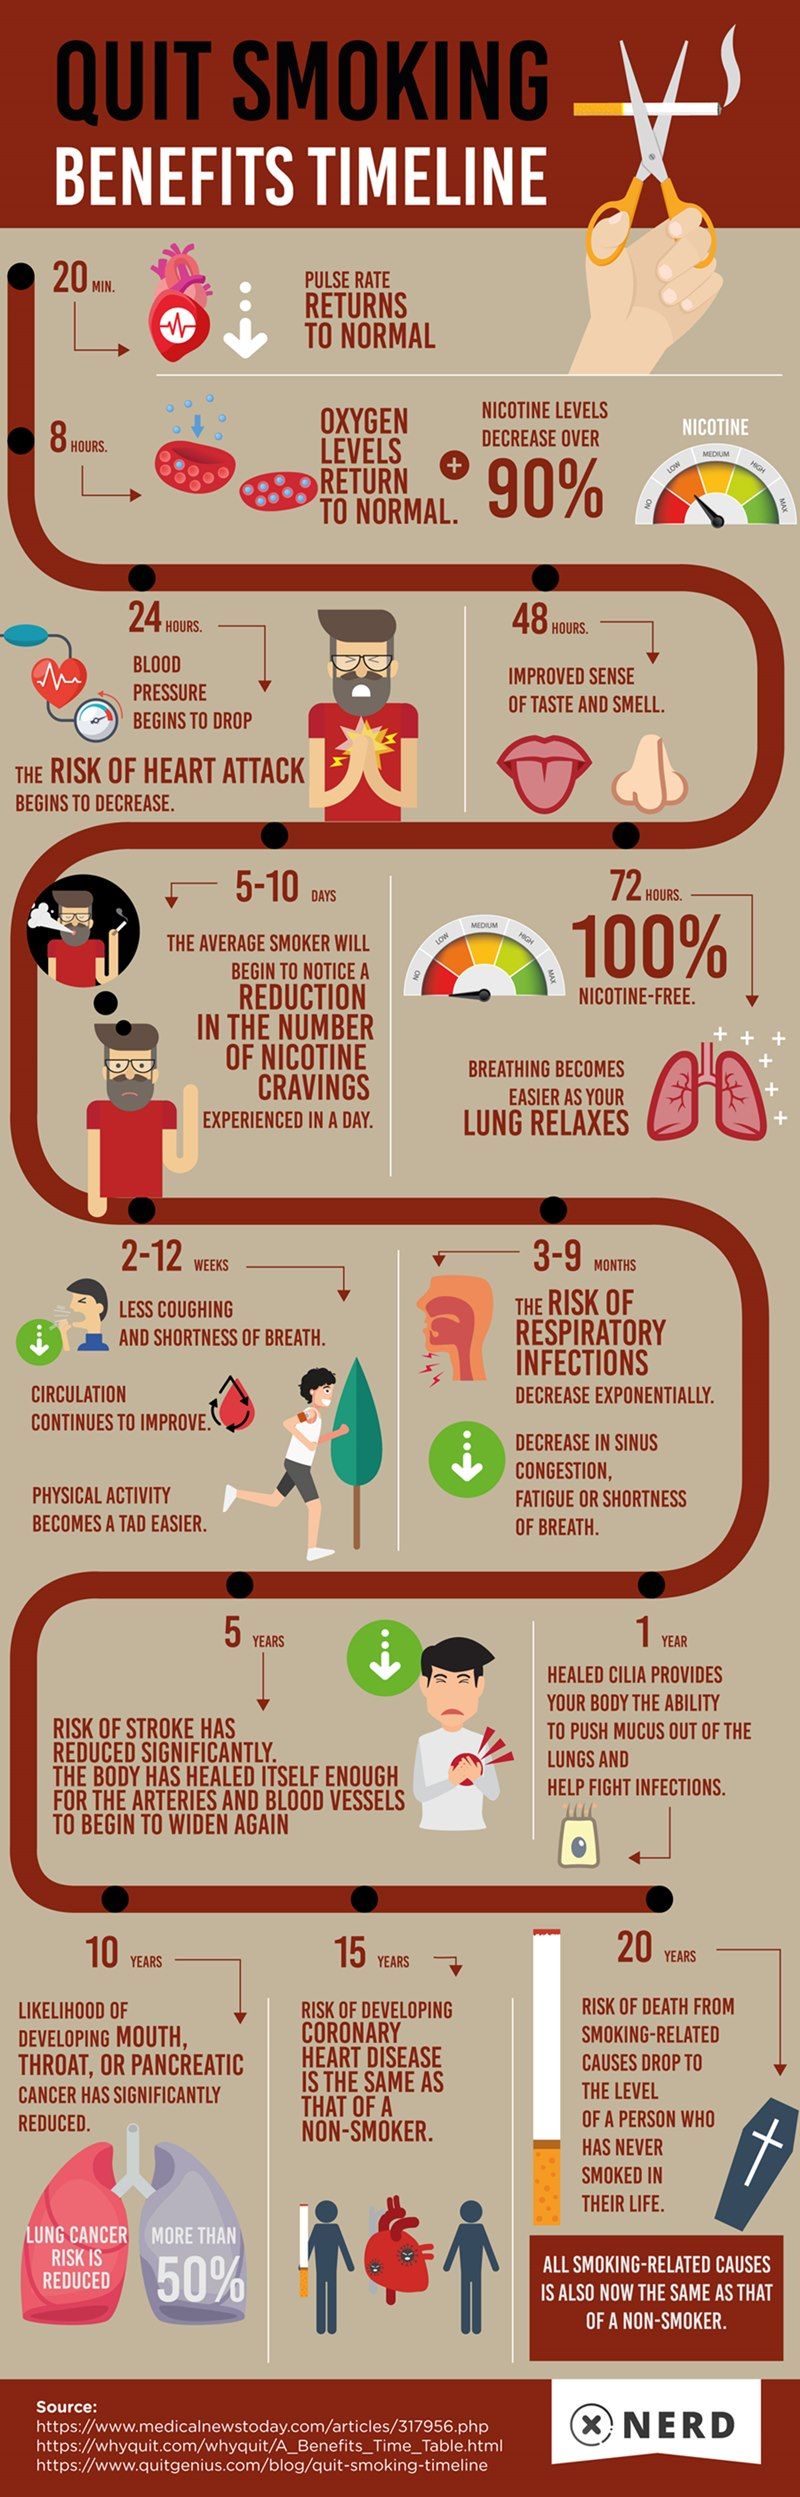 Benefits of Quitting Smoking Timeline